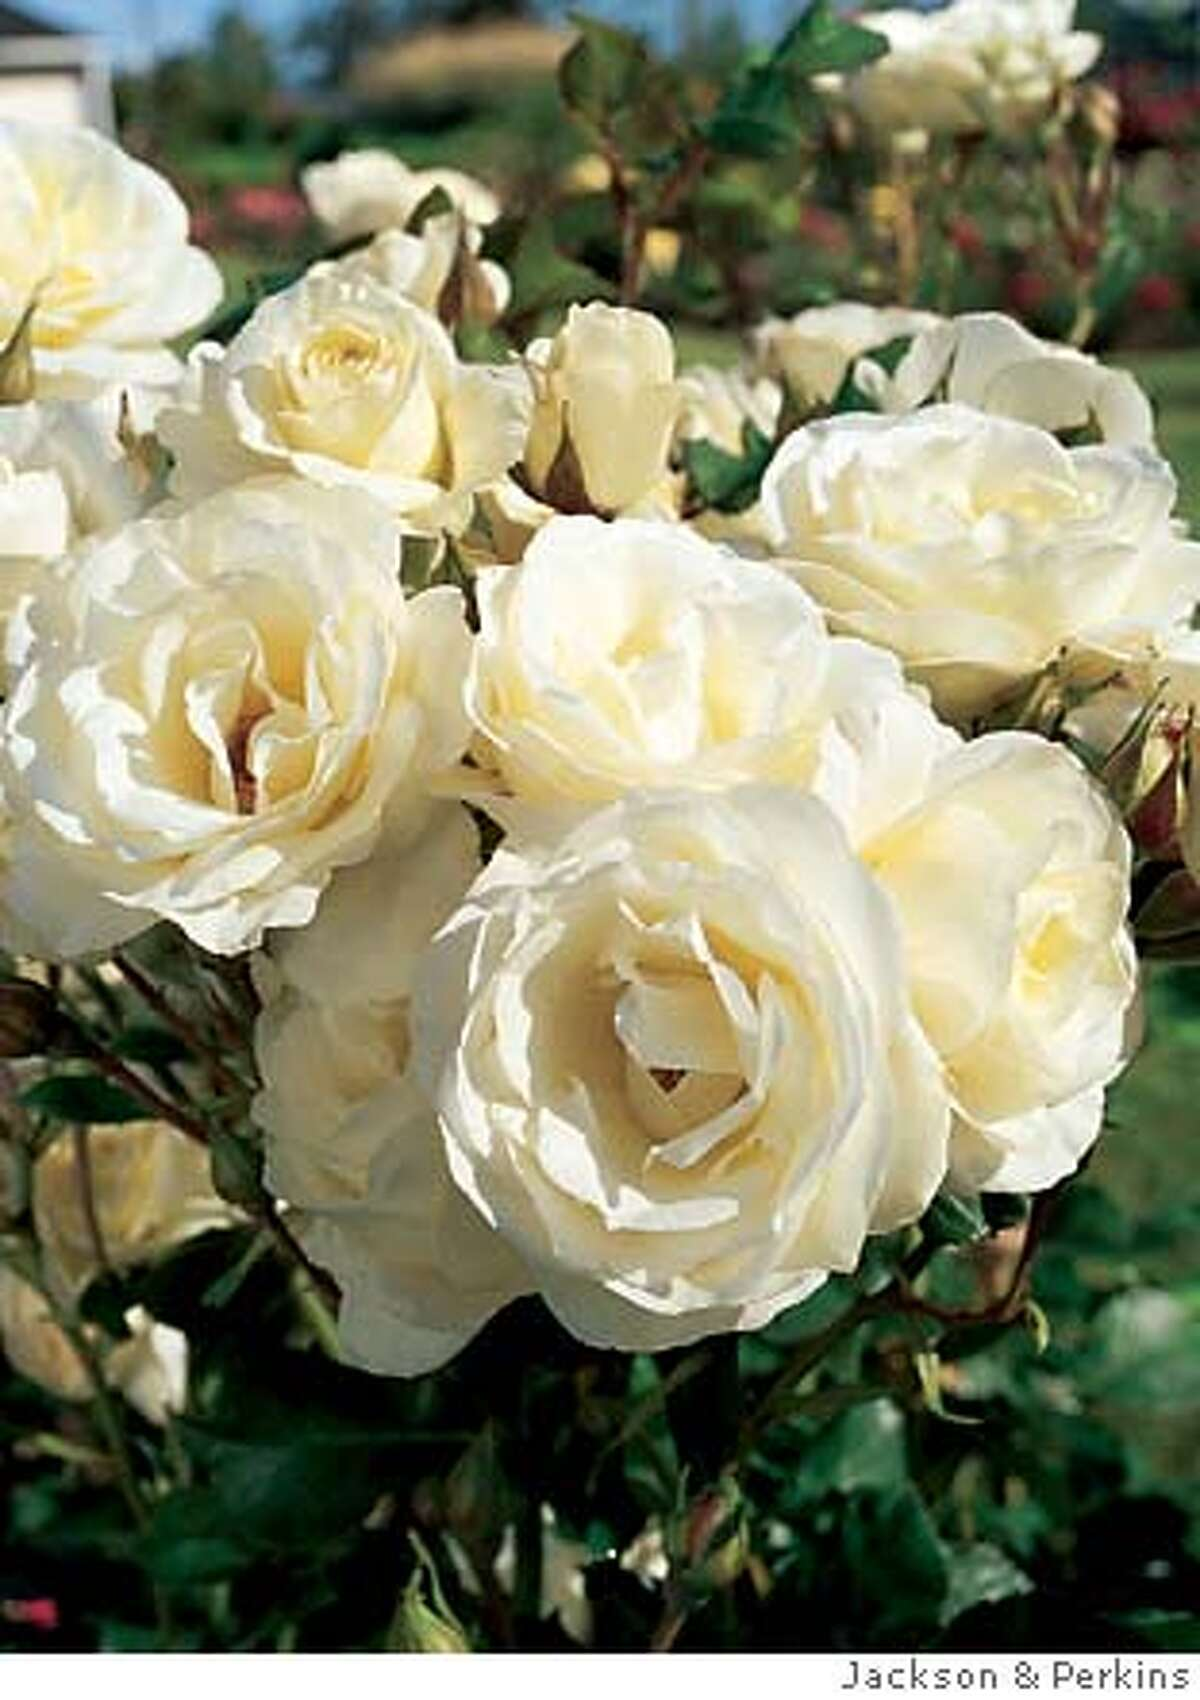 Courtesy: Jackson & Perkins Moondance, a creamy white Floribunda, should fare well in the Bay Area because blooms have 25-30 petals each.